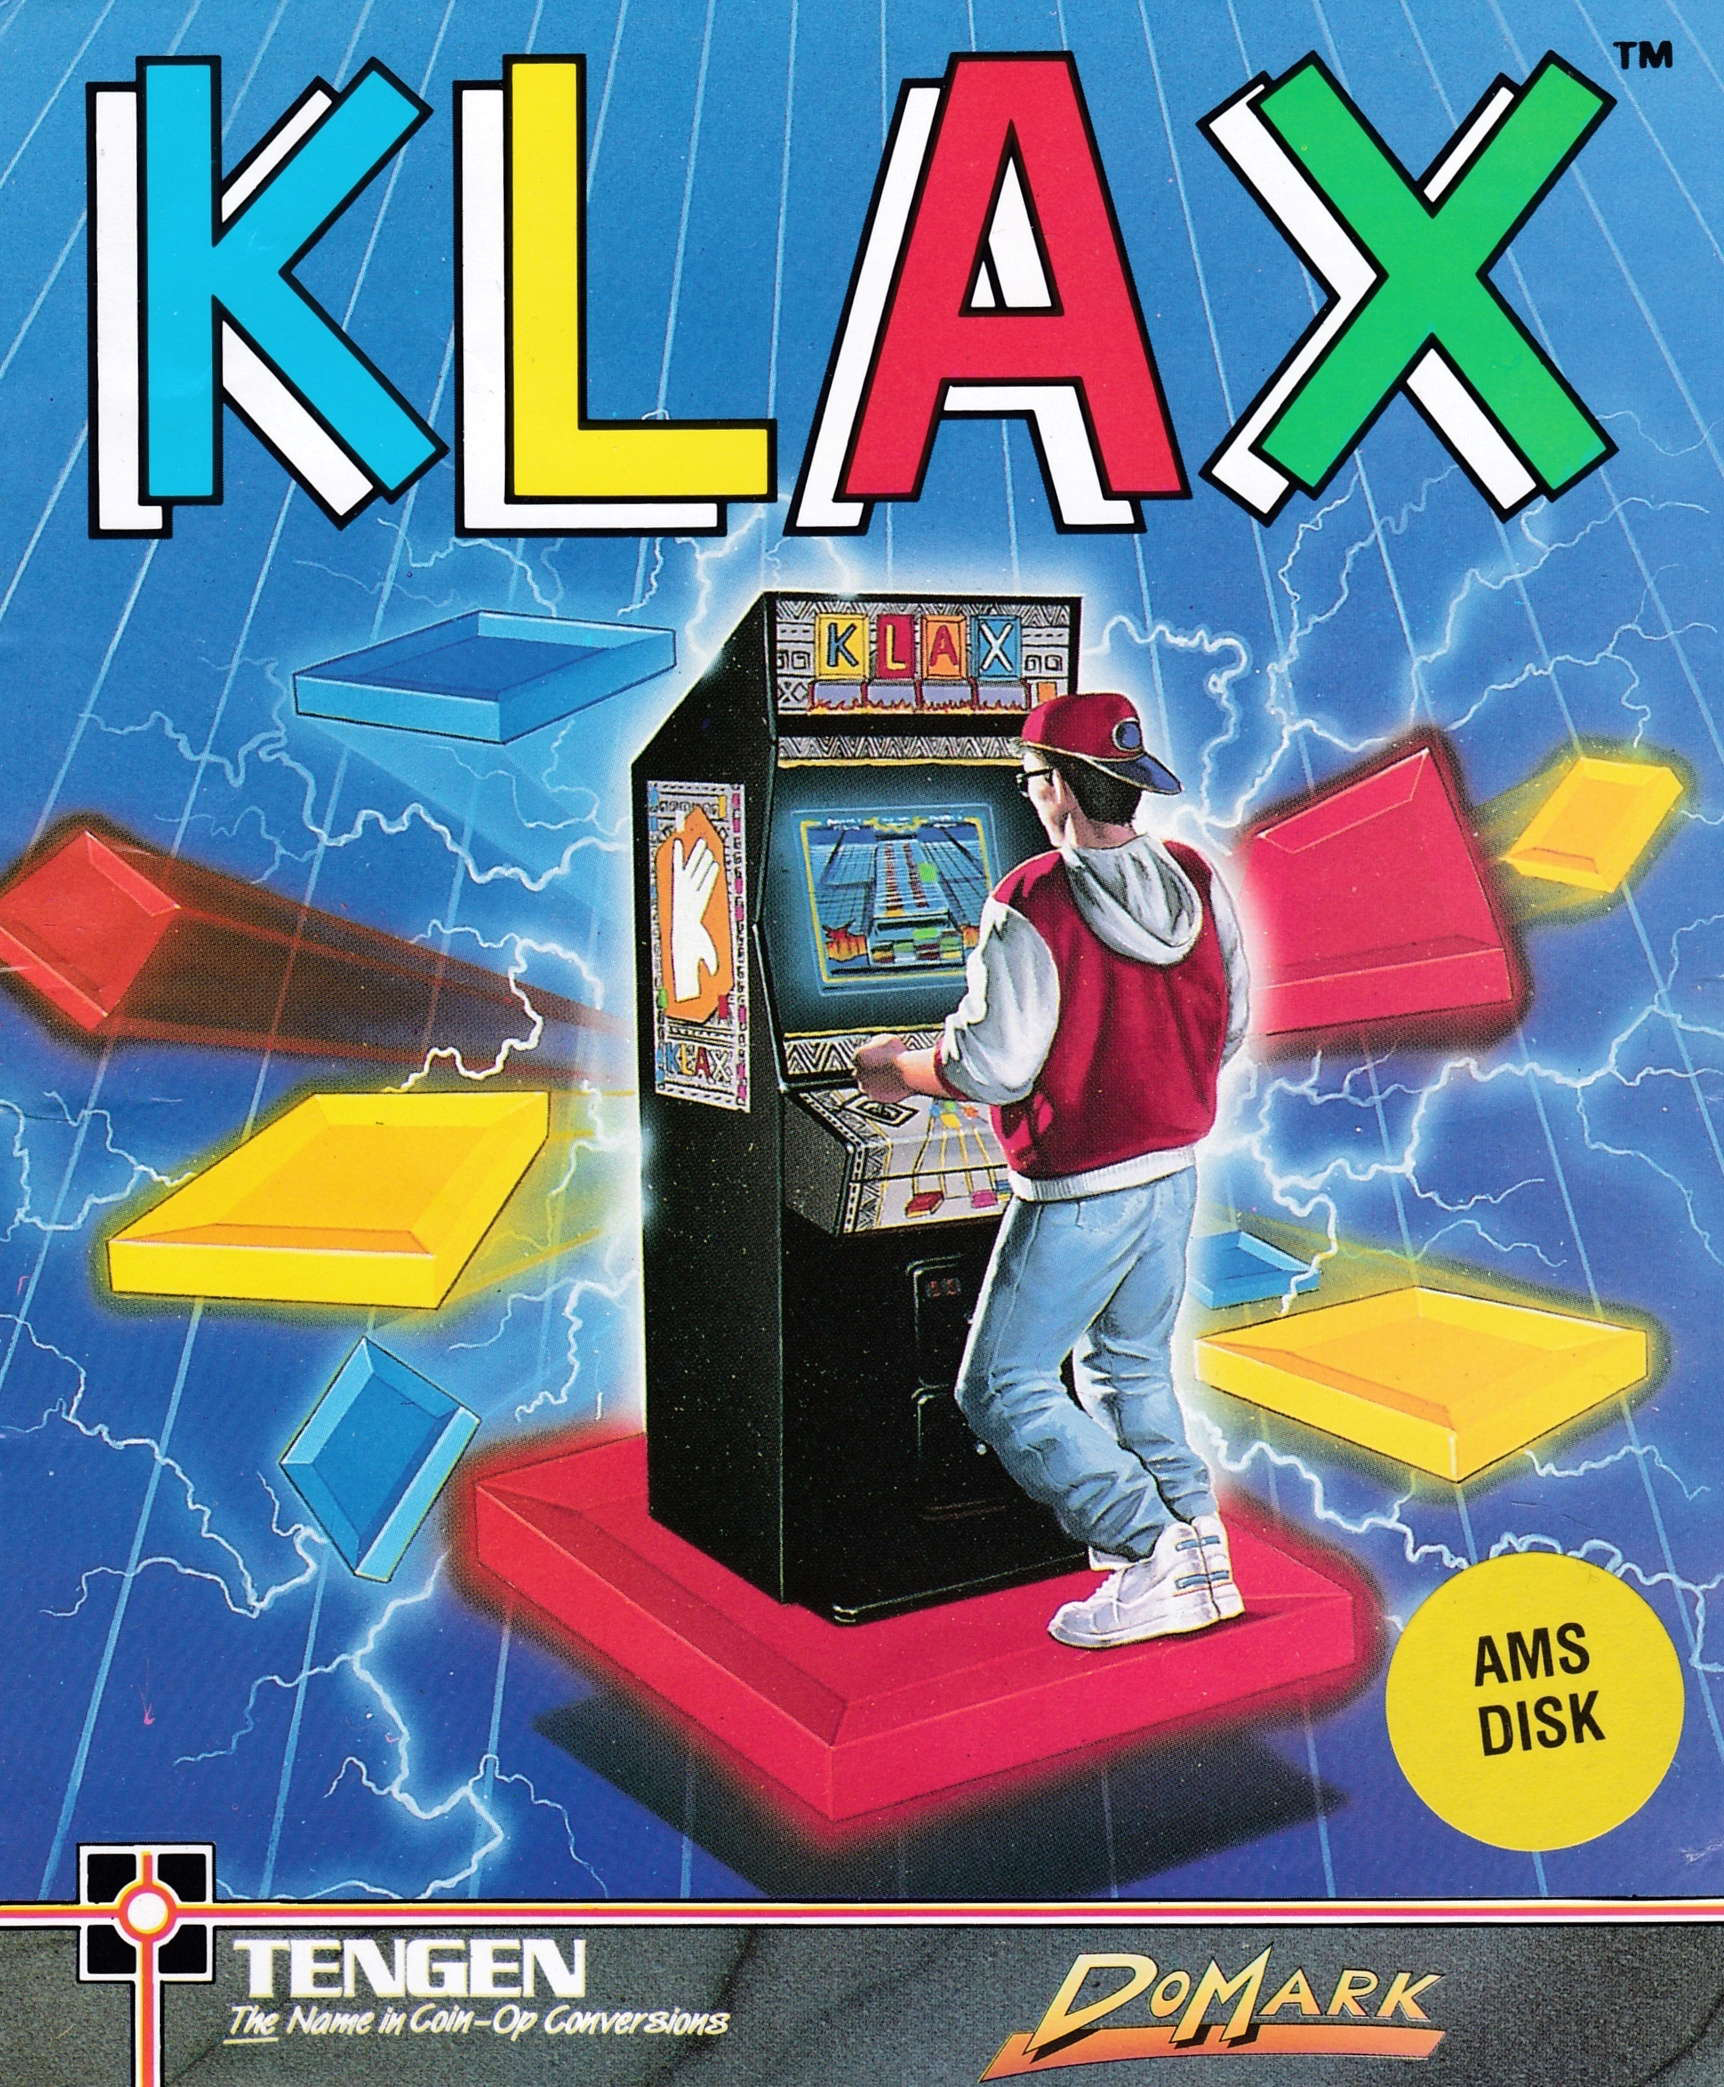 cover of the Amstrad CPC game Klax  by GameBase CPC